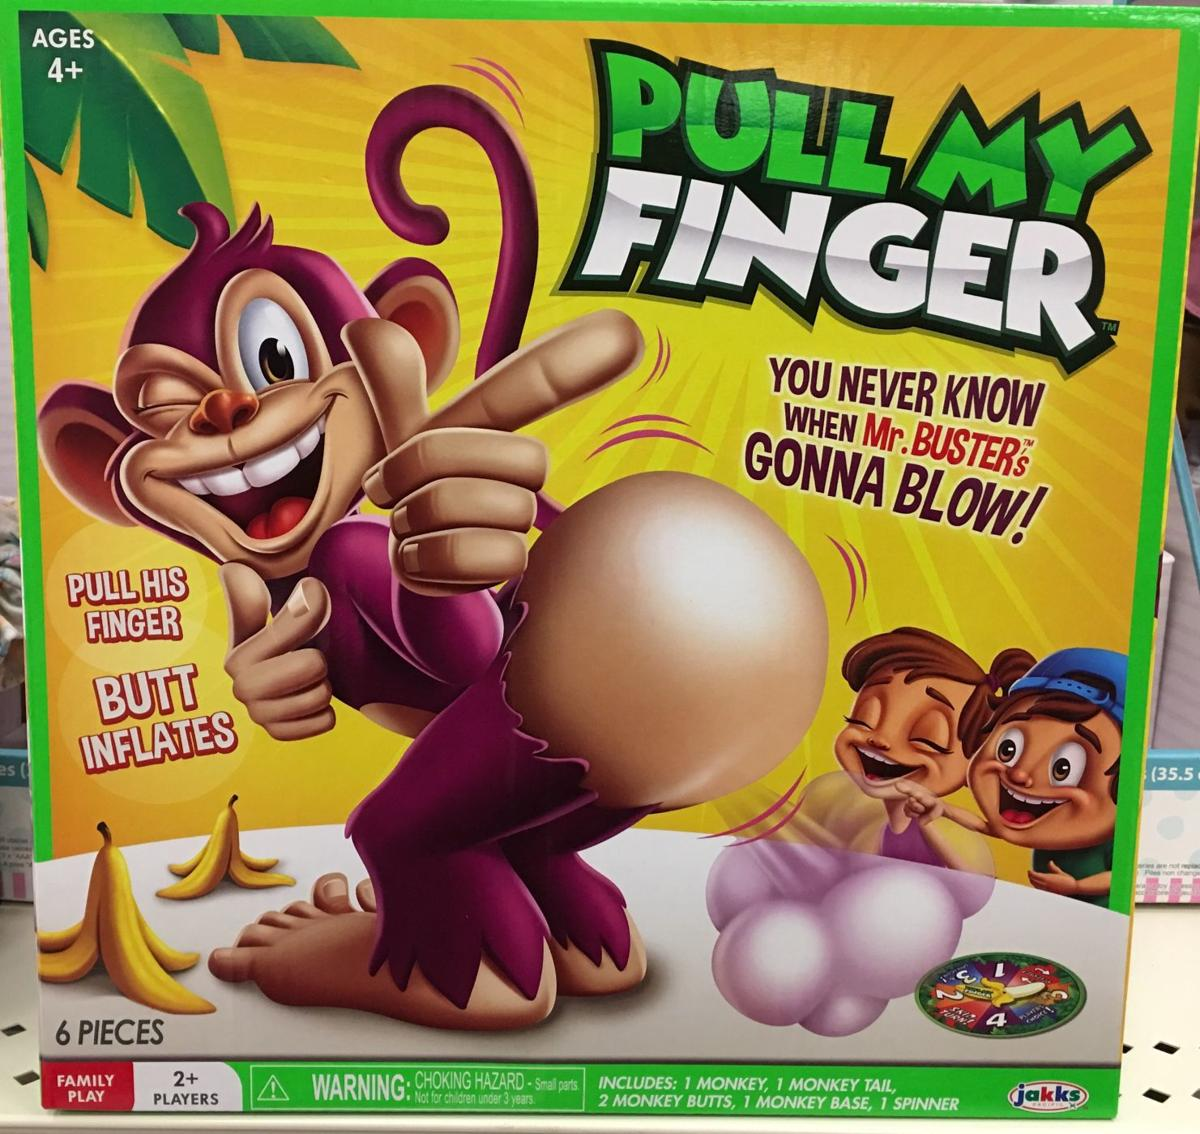 Find Board 5 disgusting board games your kids might love to find under